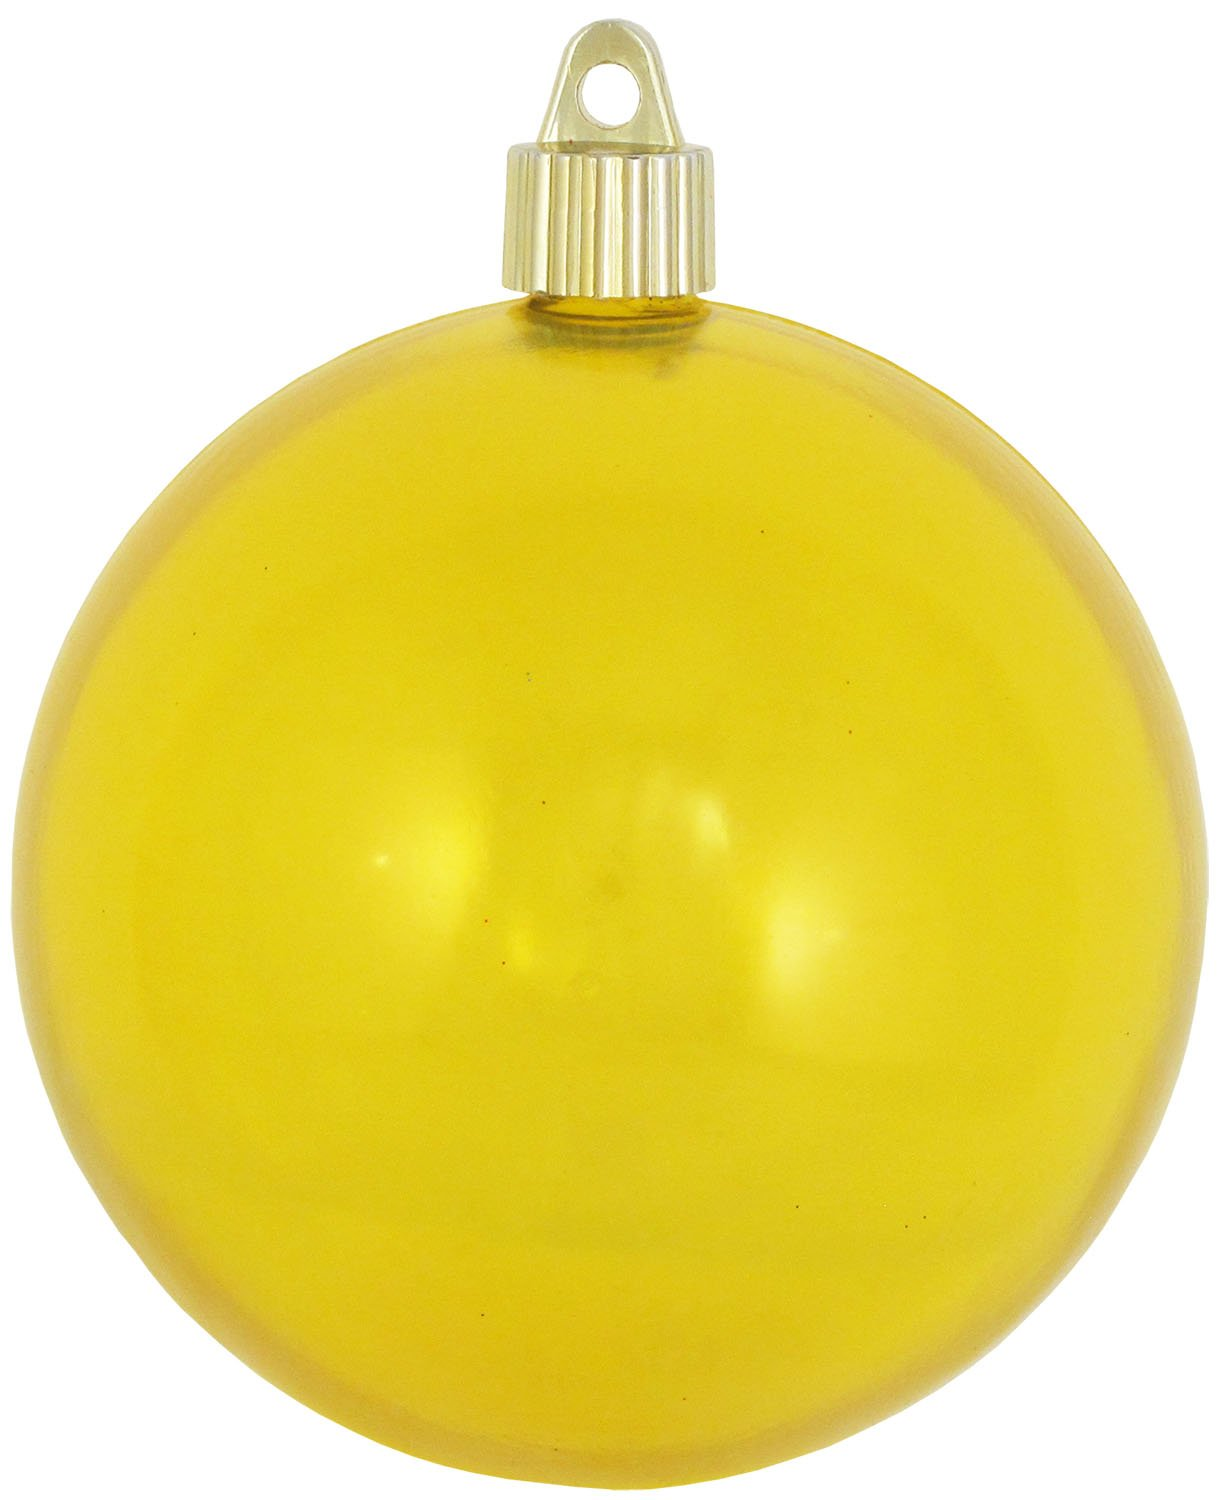 Christmas By Krebs CBK50592 Shatterproof UV-Resistant Christmas Ball Ornaments 4'' Yellow Translucent 48 Piece